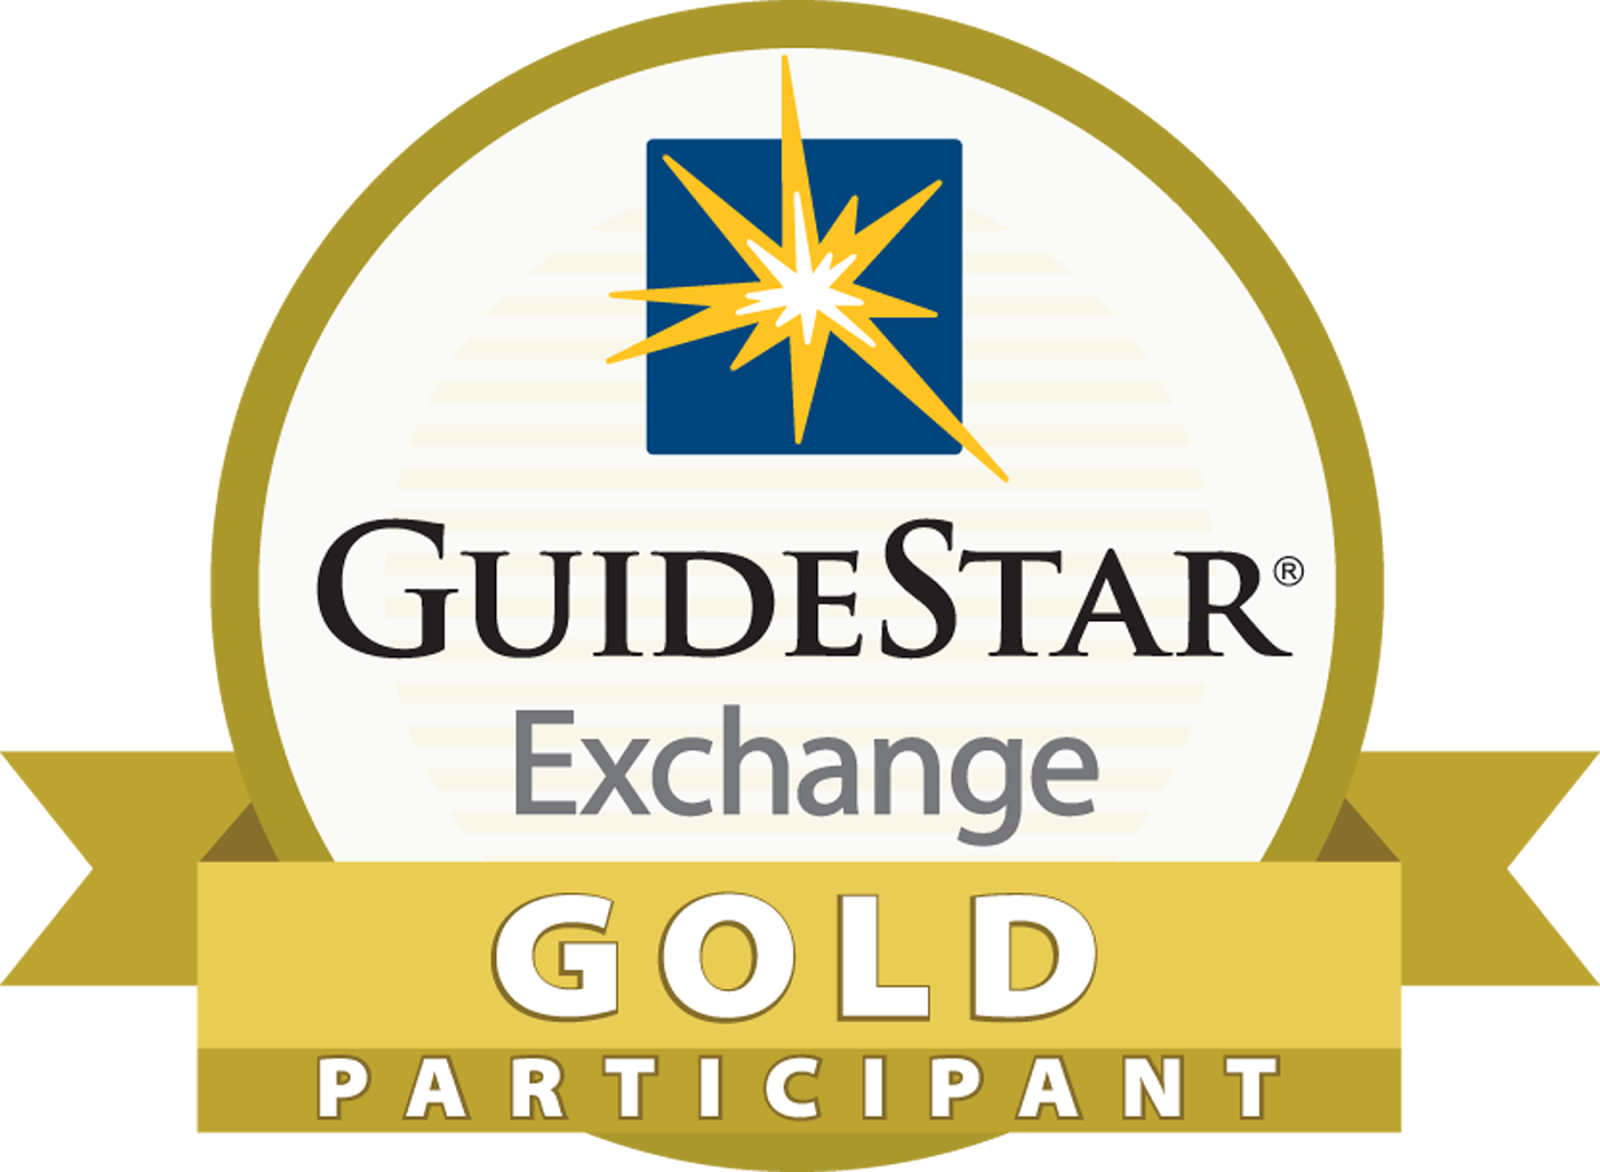 Guidestar Exchange: Gold Participant